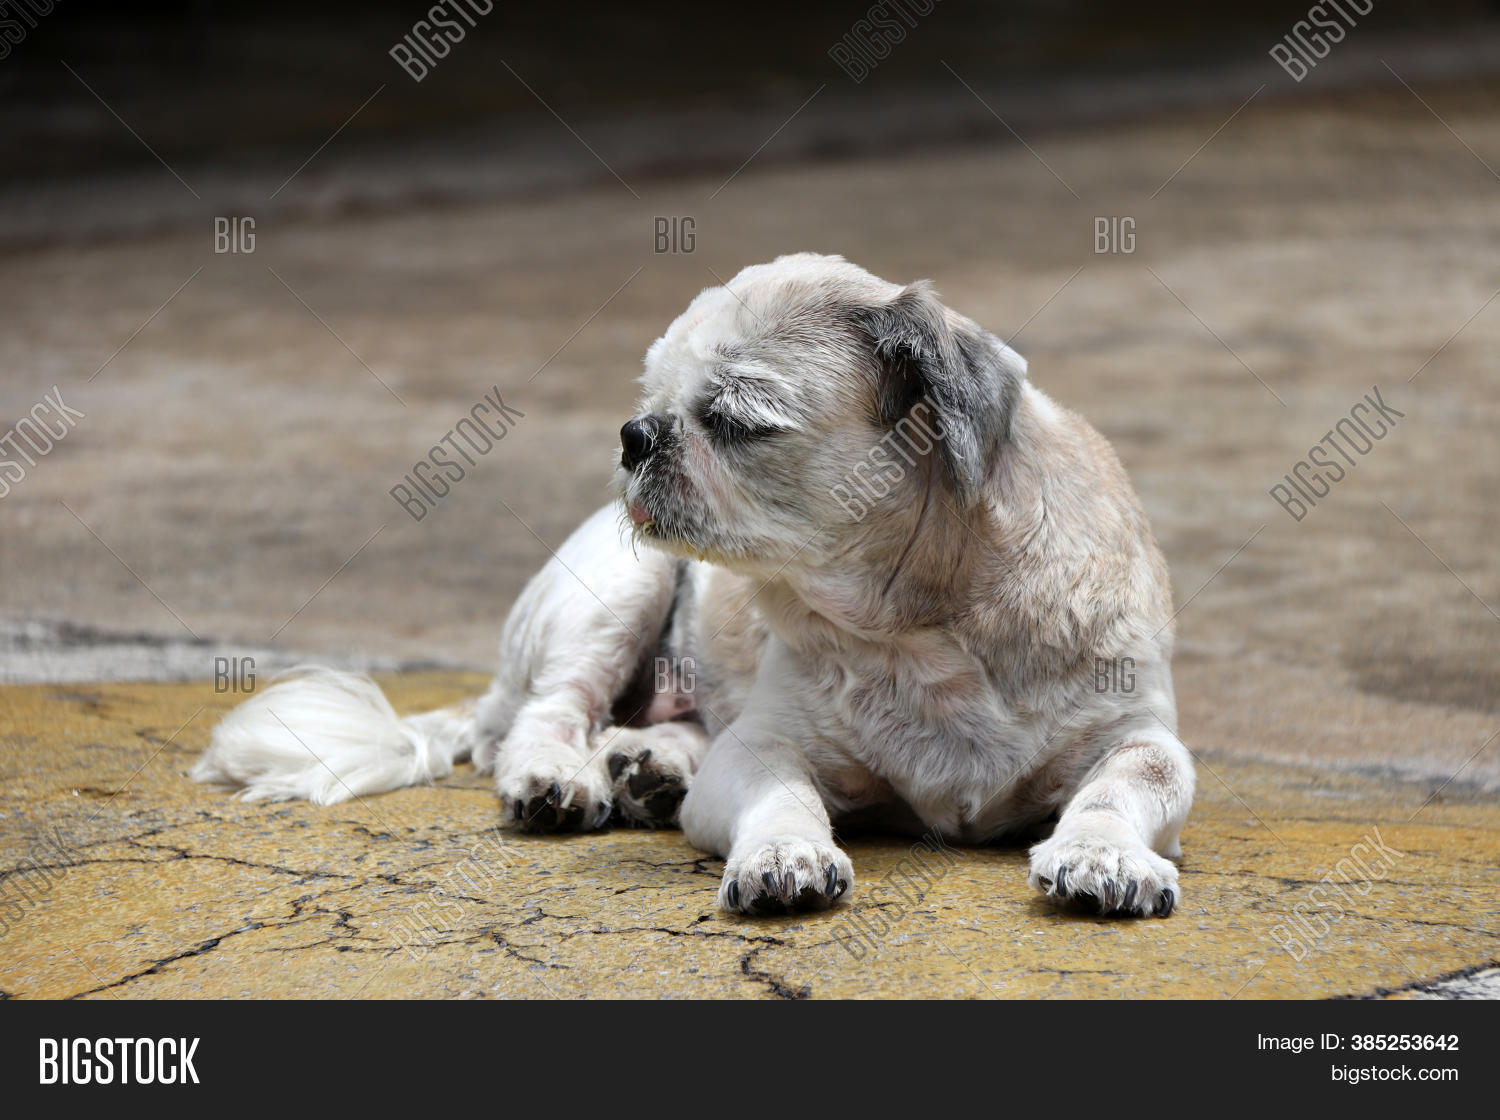 Shih Tzu Dog Short Image Photo Free Trial Bigstock